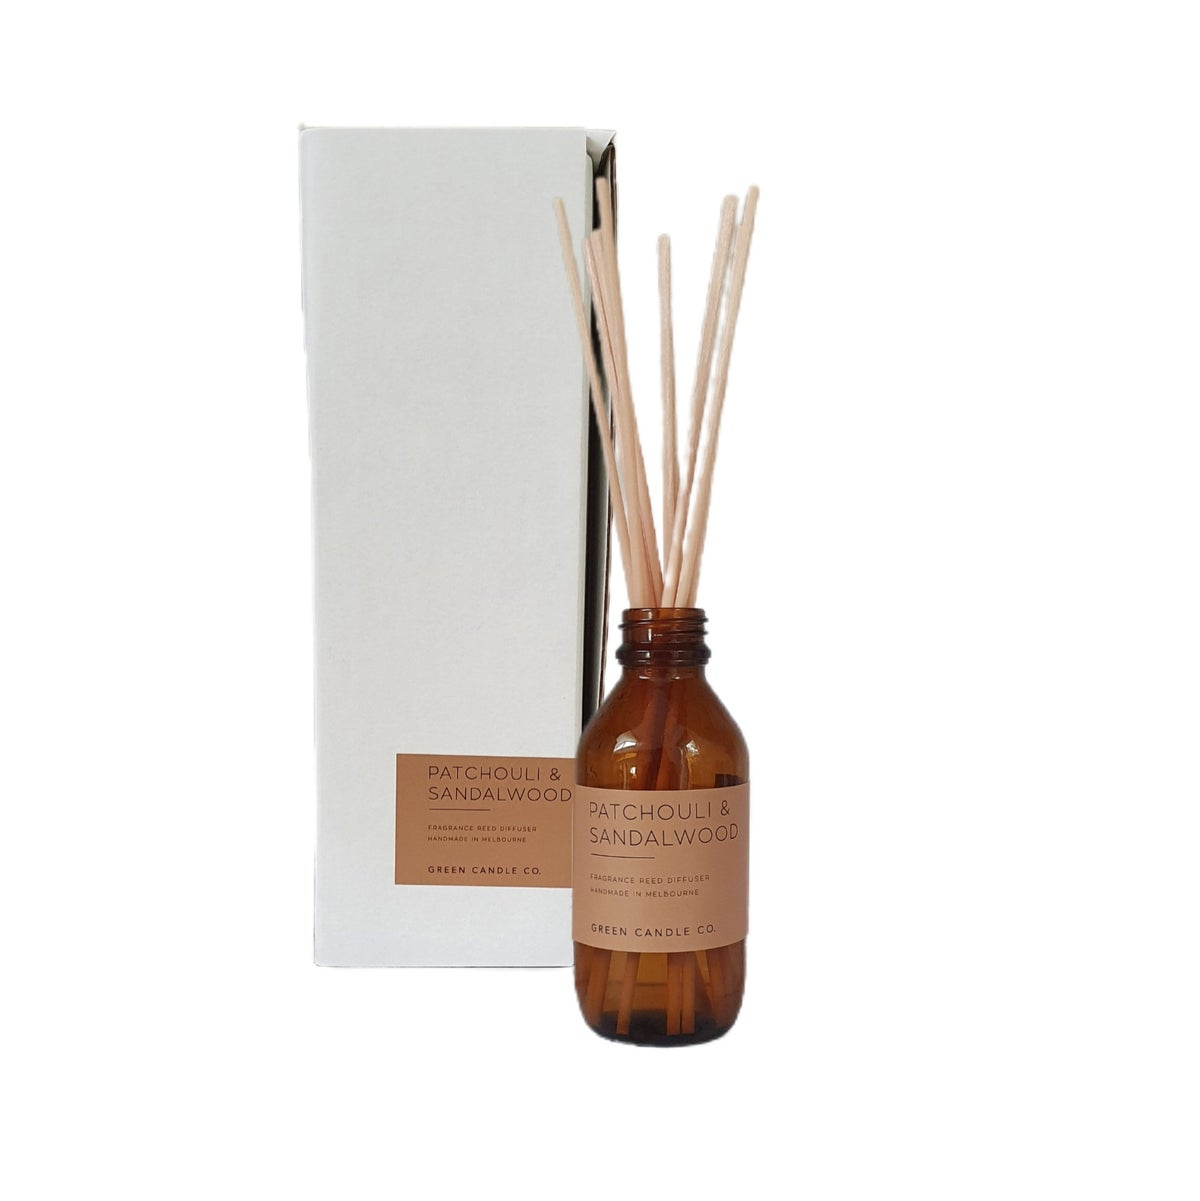 Image of PATCHOULI & SANDALWOOD / Reed Diffuser